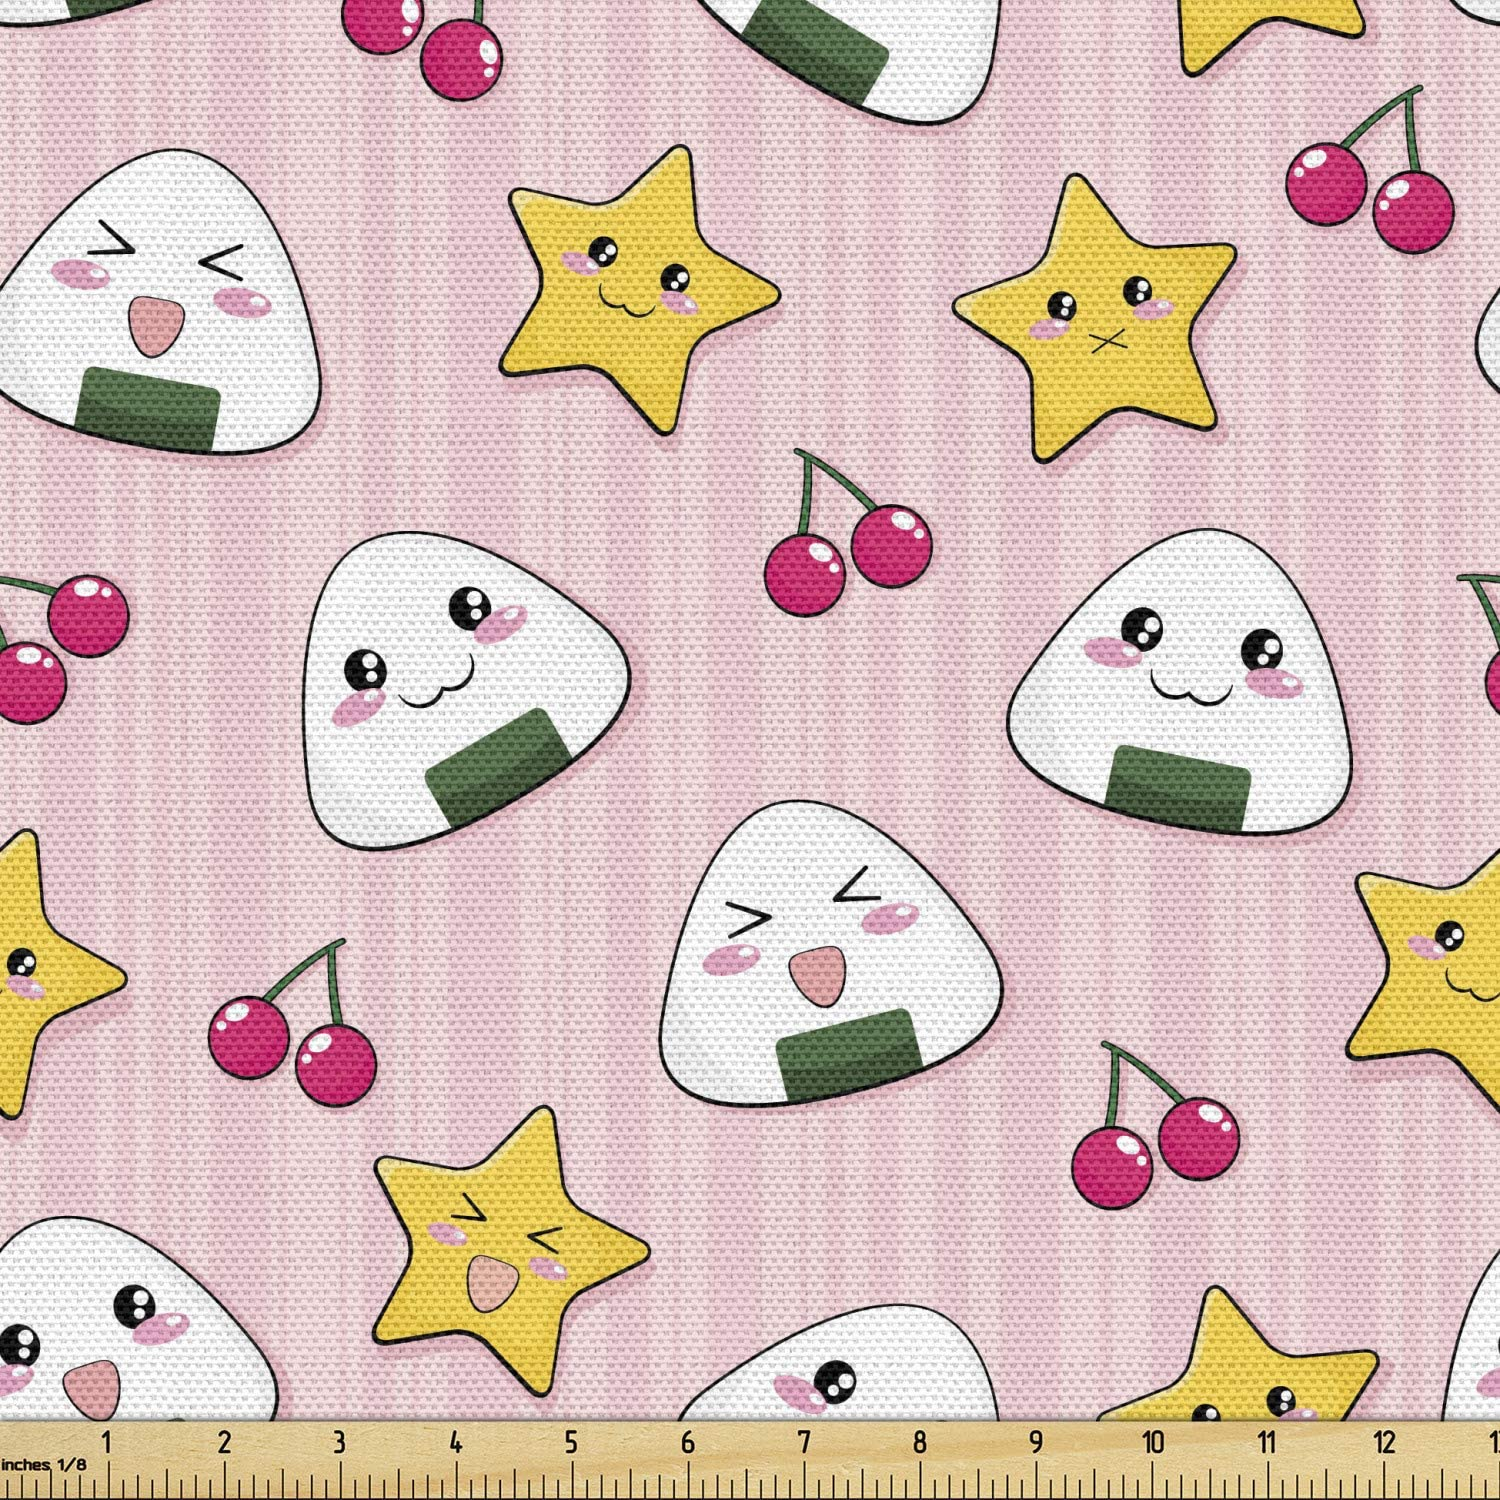 Ambesonne Japan Fabric by The Yard, Japanese Foods Rice Ball Cherries Kawaii Anime Pattern Design, Decorative Fabric for Upholstery and Home Accents, 3 Yards, Pink